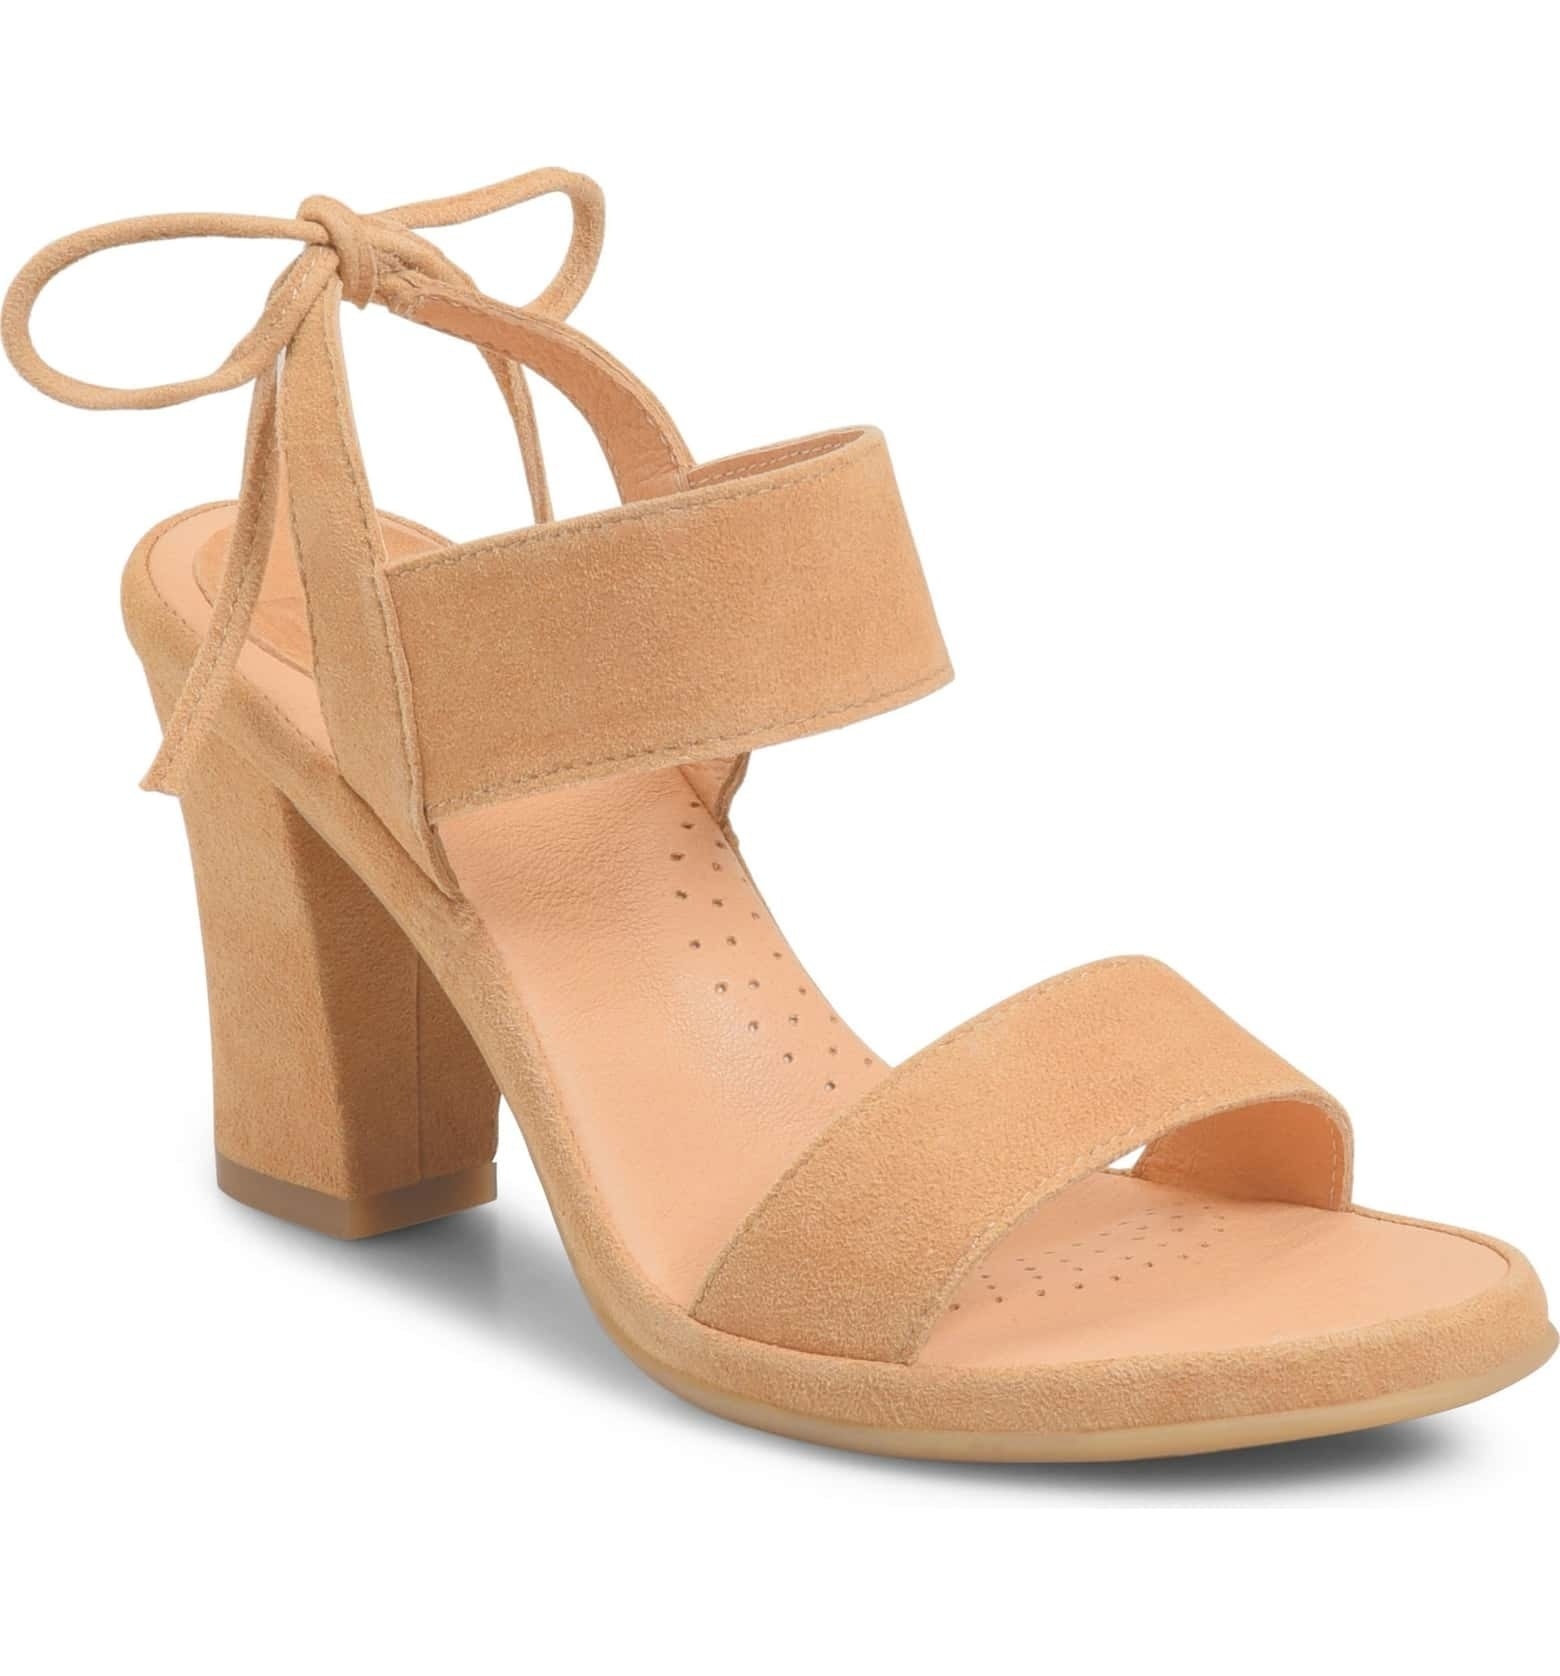 a3ed6052711e Tie-back sandals with 3-inch block heels to mitigate the typical high heel  pain without diminishing style.